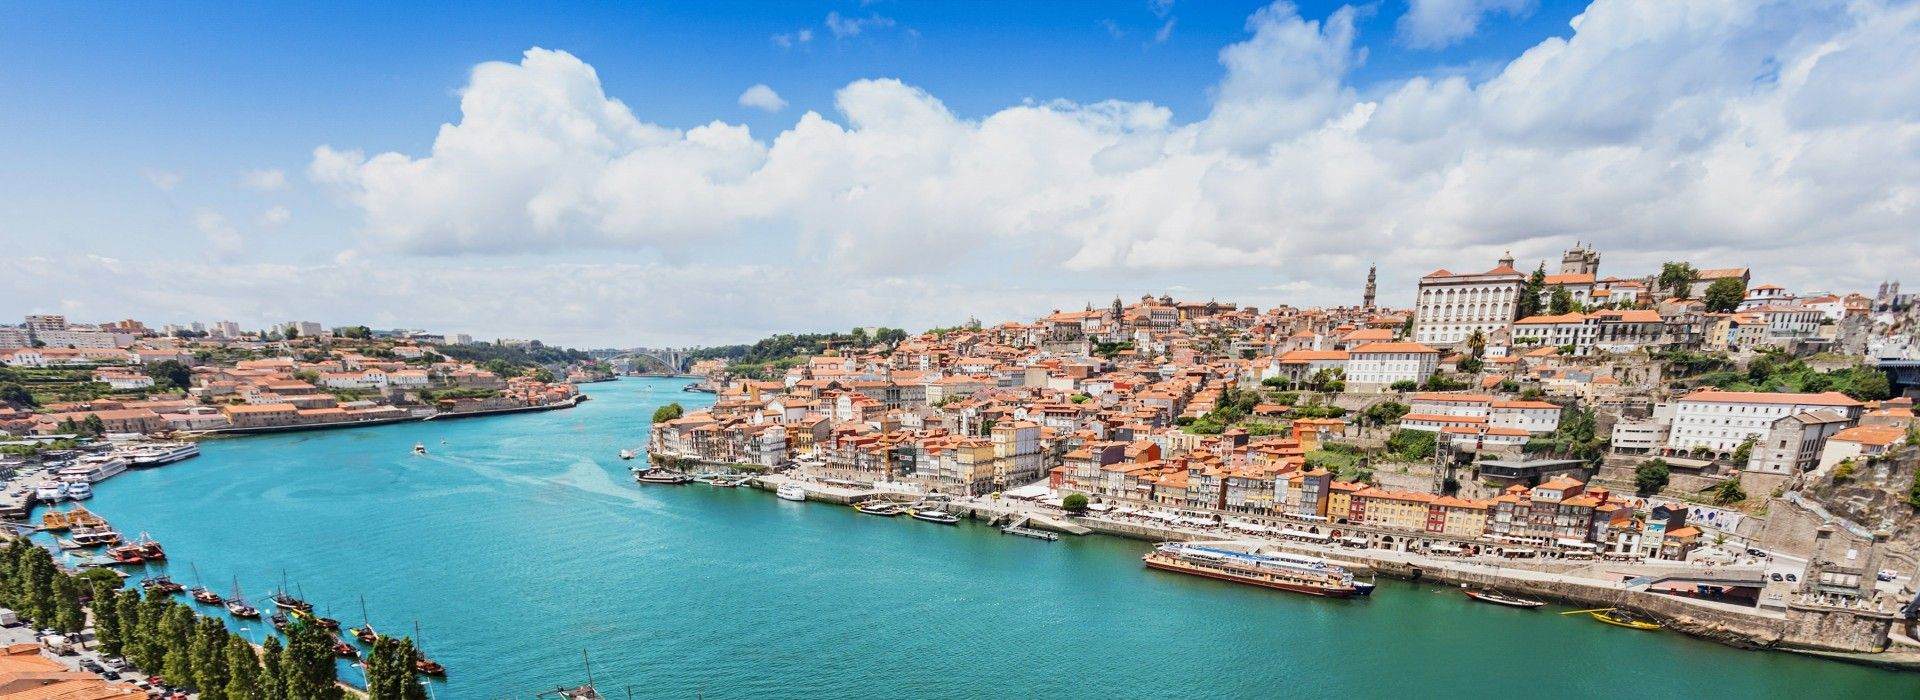 Boat tours, water sports and marine wildlife in Lisbon